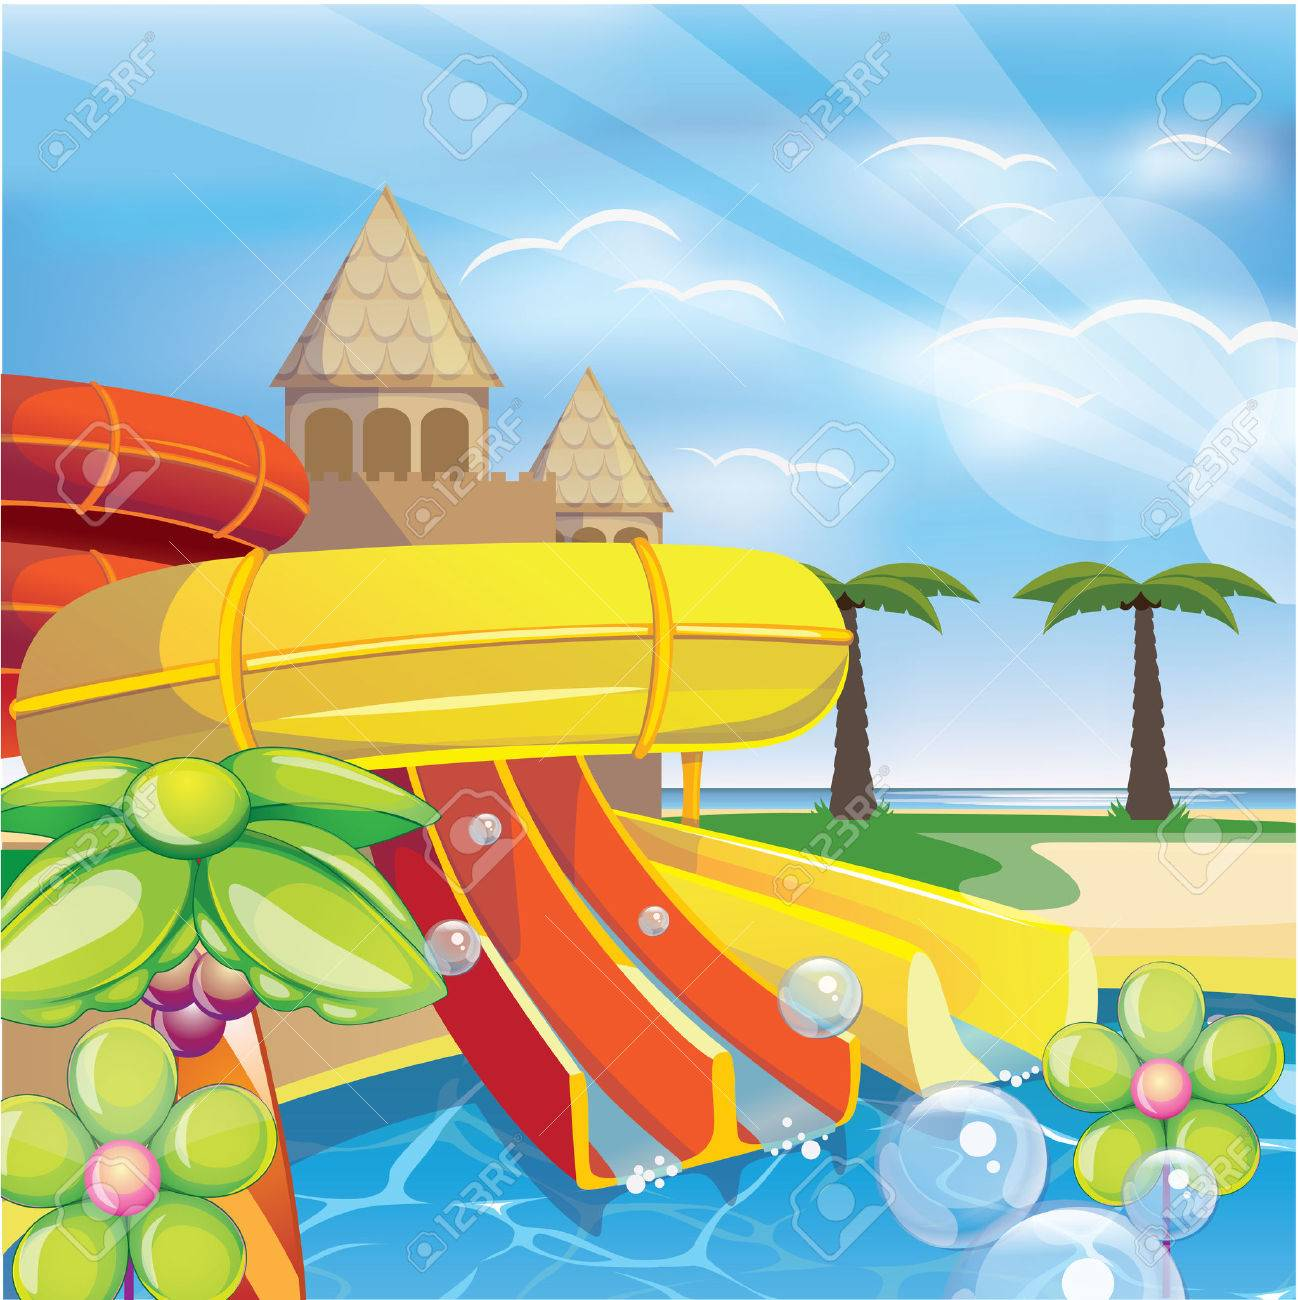 14 651 water park stock vector illustration and royalty free water rh 123rf com water park slides clip art water park clipart black and white